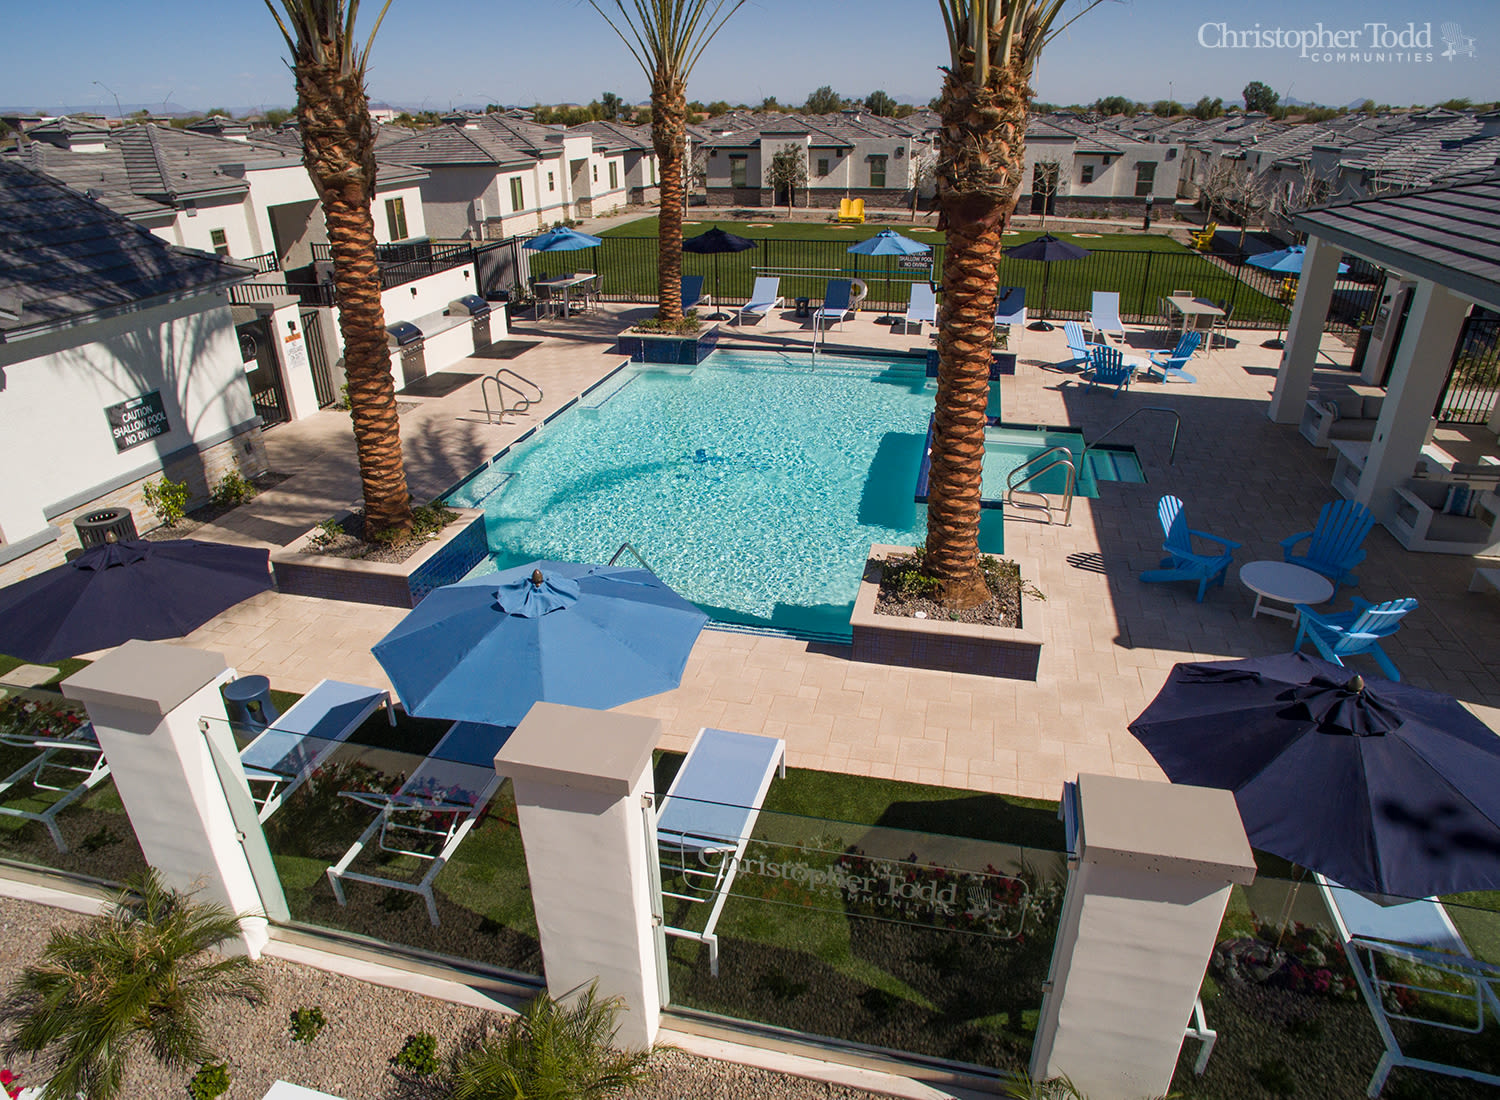 Christopher Todd Communities on Greenway apartments in Surprise, Arizona